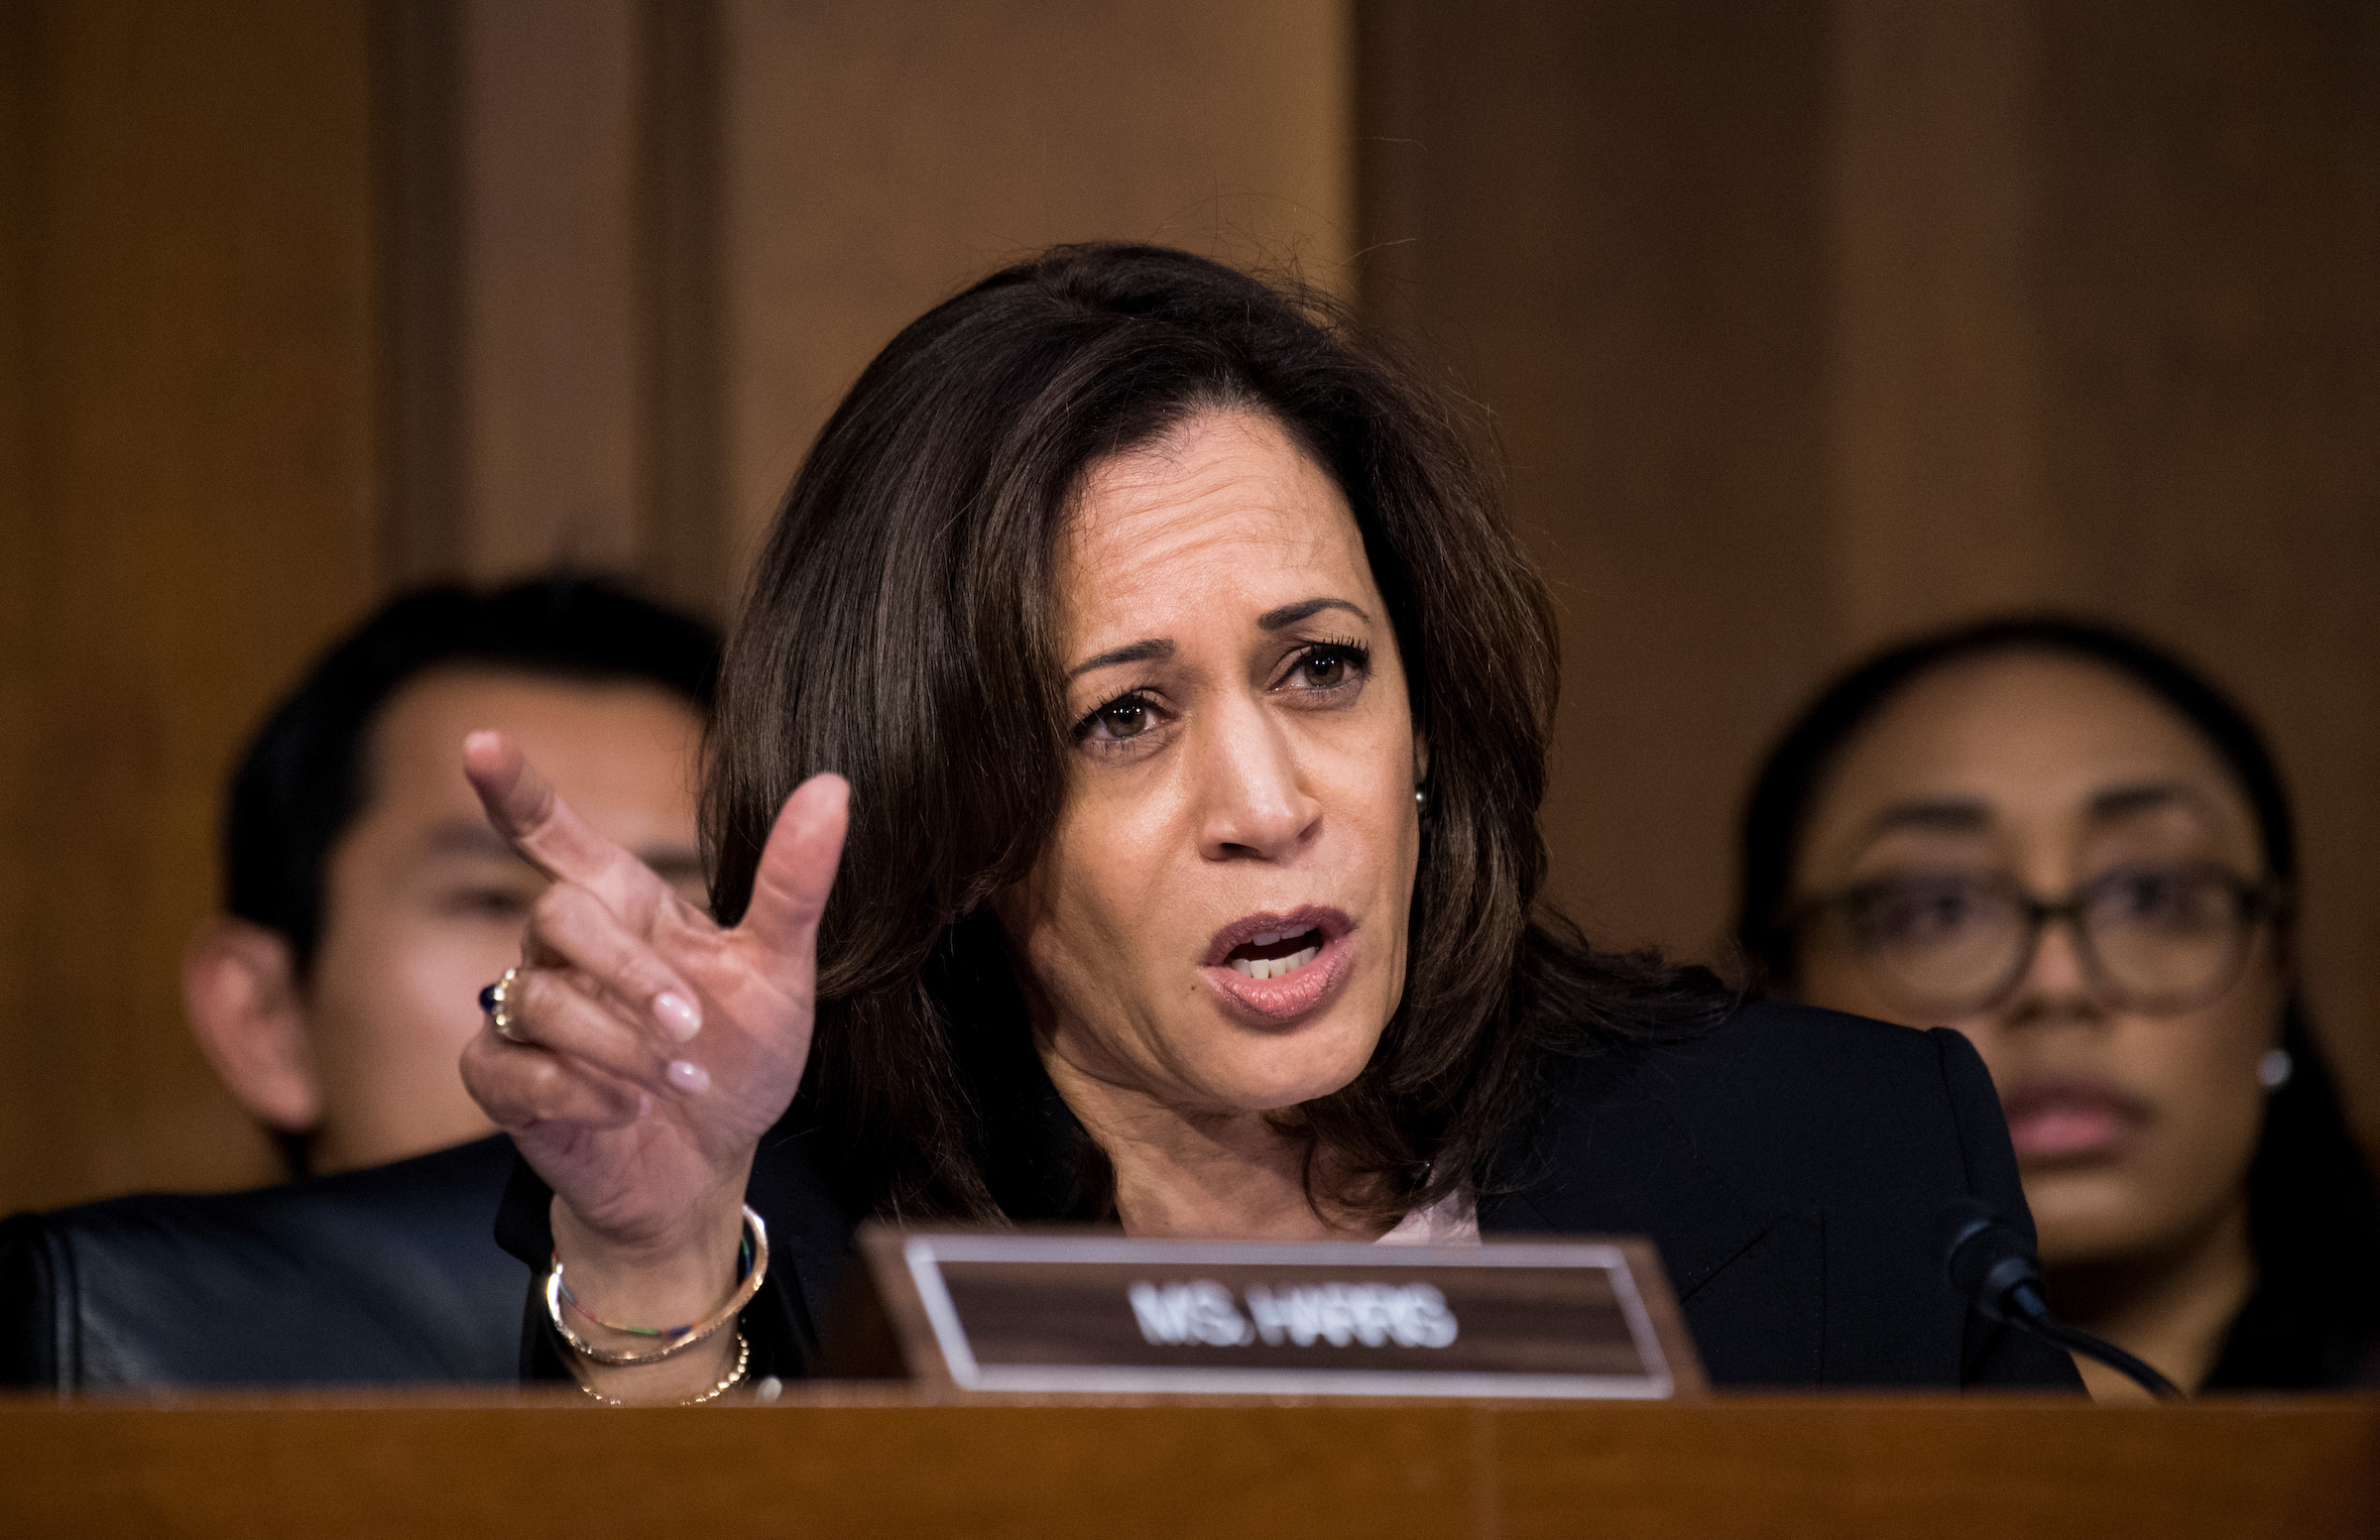 Harris Laid Groundwork For Vp Nod With Tough Committee Questions